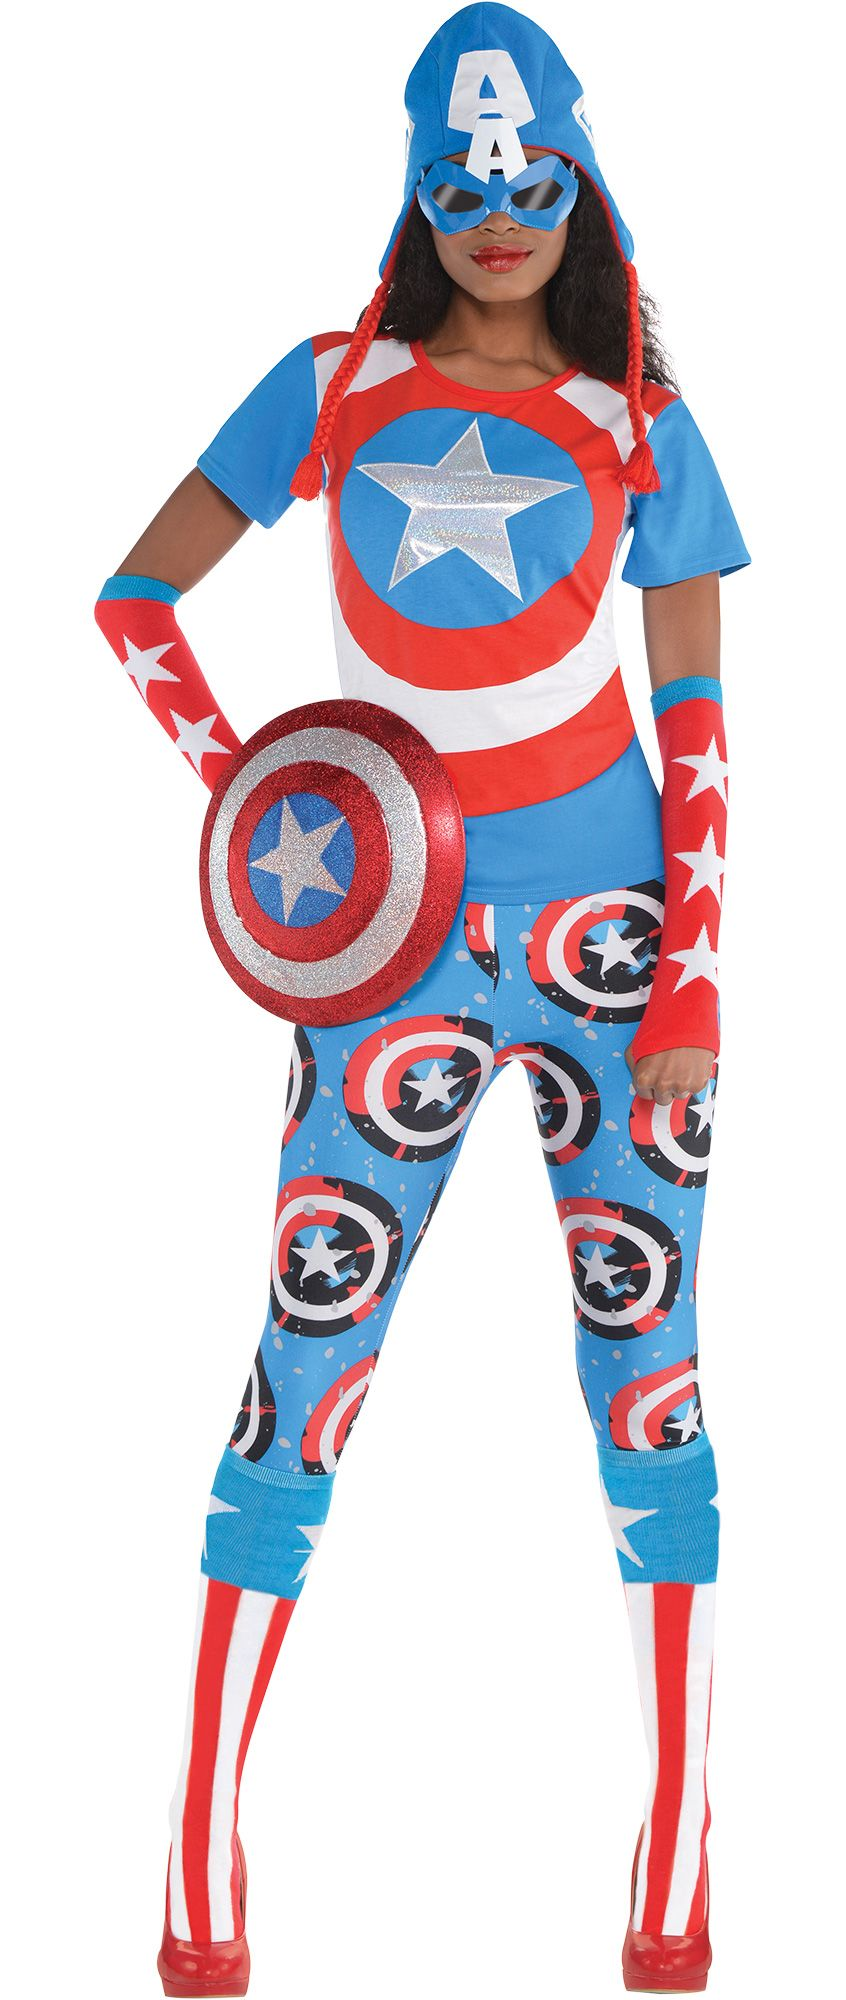 Create Your Own Look - Women's Captain America